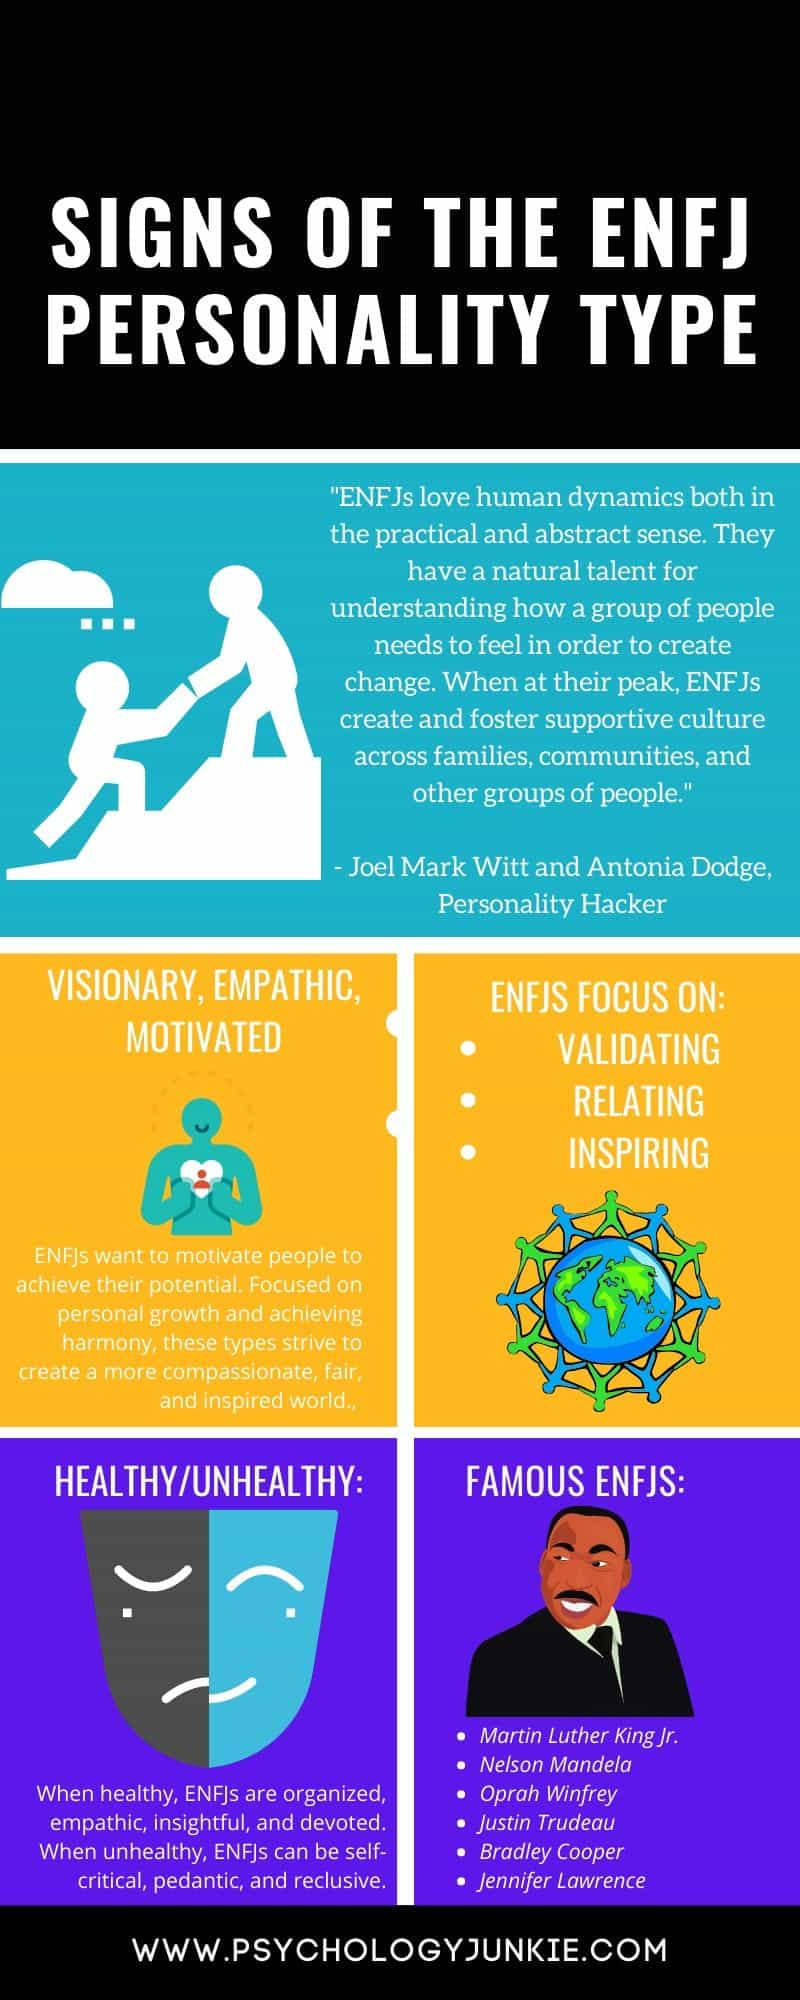 A quick look at the strengths of the #ENFJ personality type. #MBTI #Personality